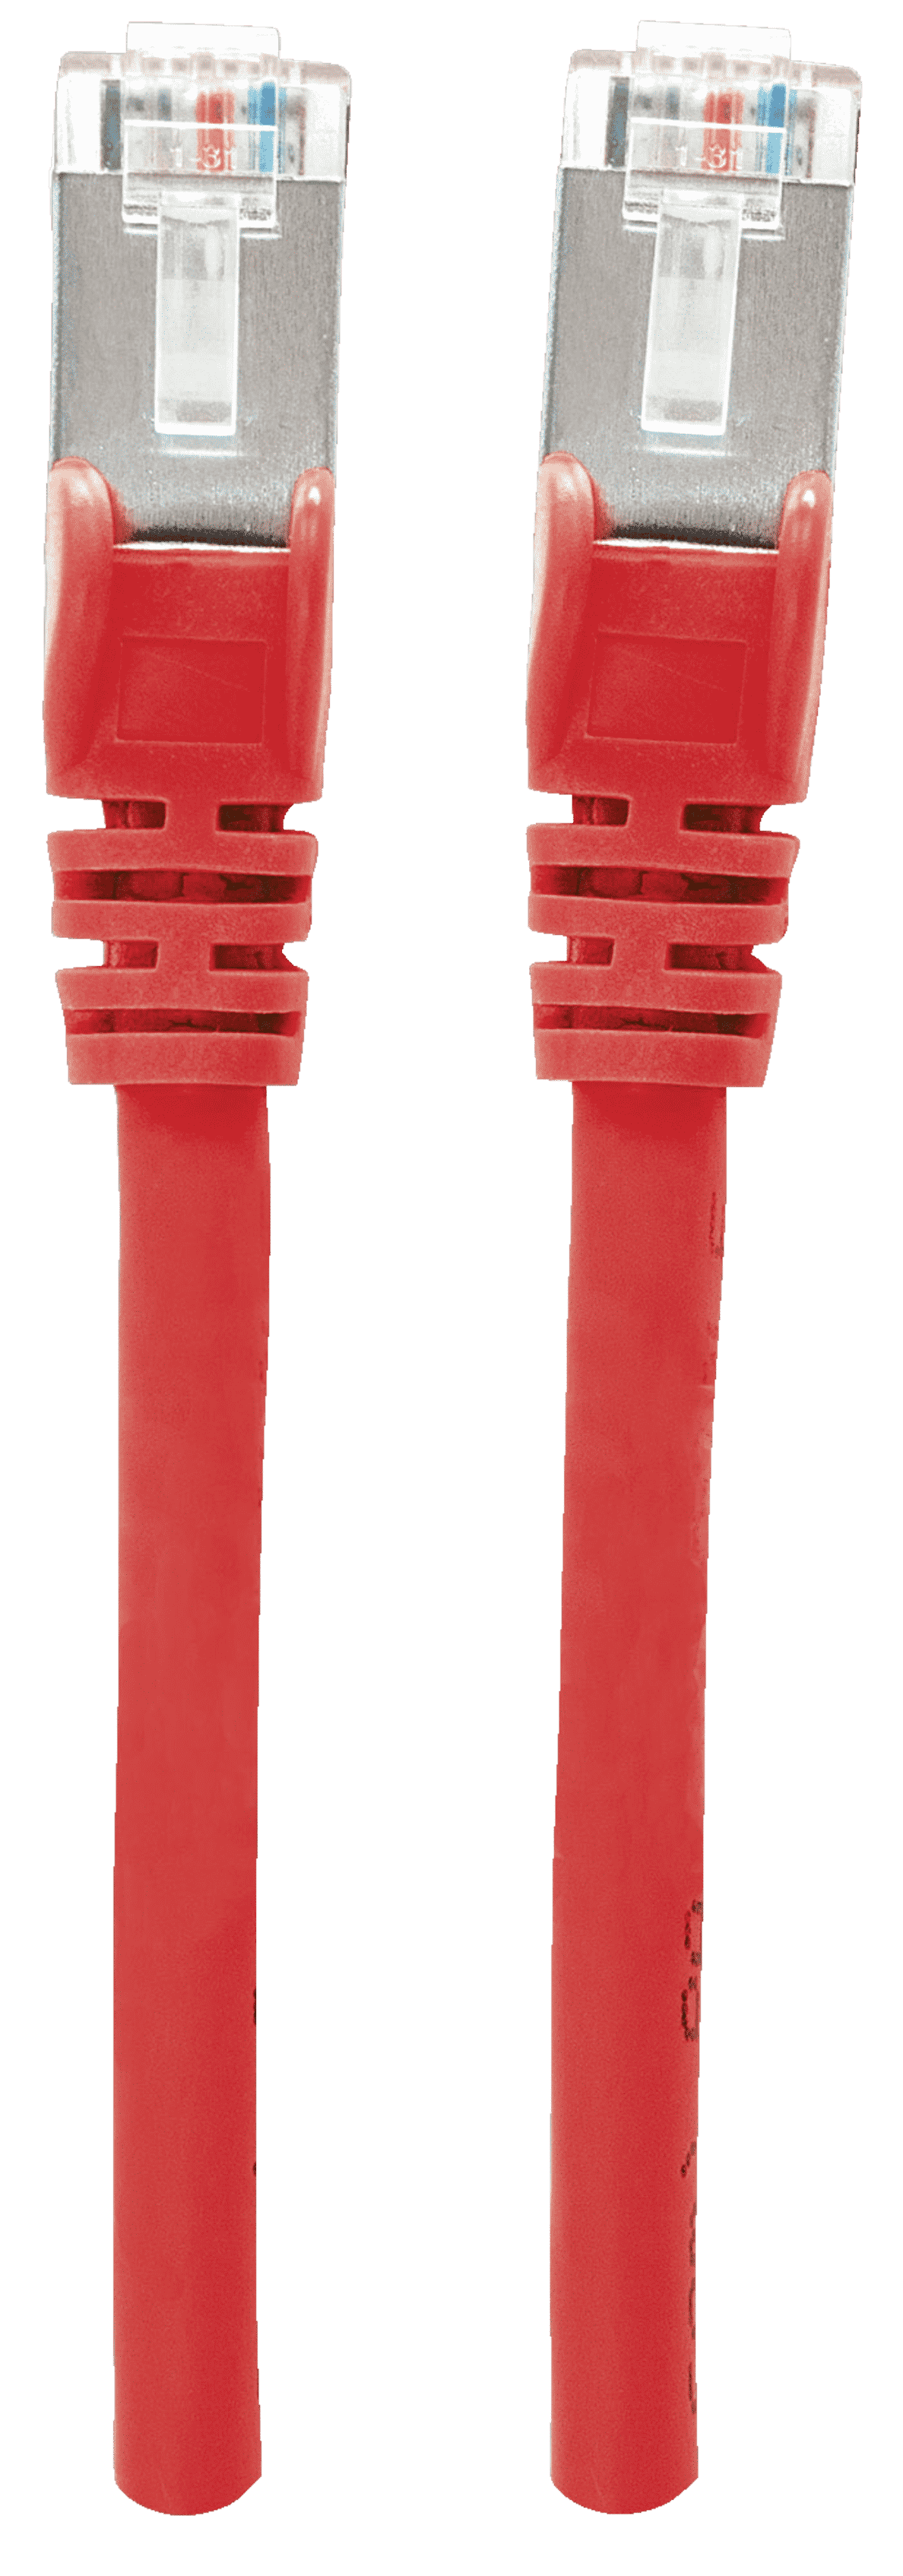 INTELLINET  Premium Netzwerkkabel, Cat6, S/FTP Patchkabel 1 m in Rot | 00766623736145